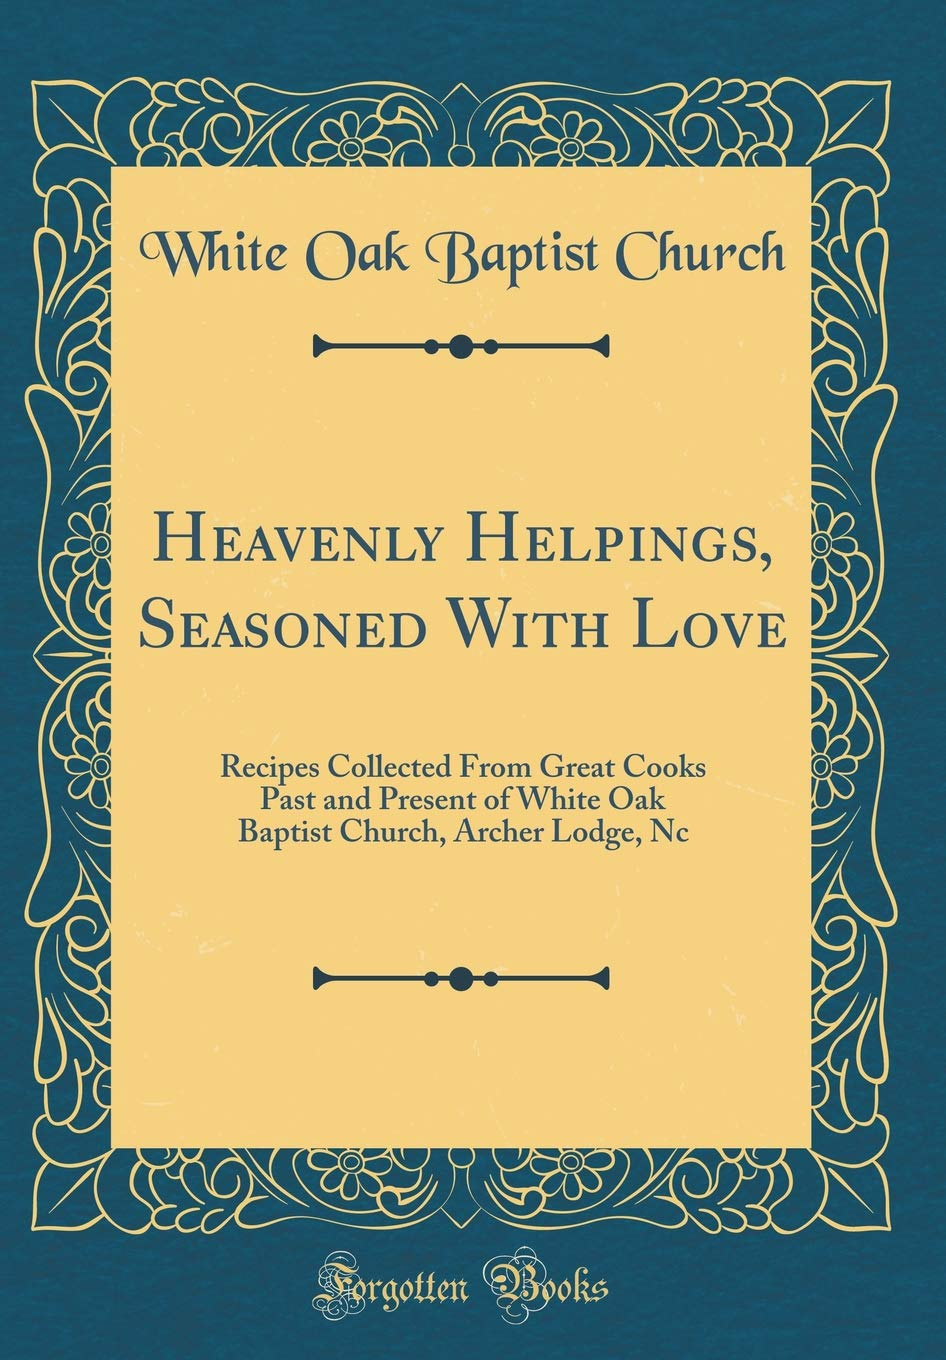 Heavenly Helpings, Seasoned with Love: Recipes Collected from Great Cooks Past and Present of White Oak Baptist Church, Archer Lodge, NC (Classic Reprint) PDF